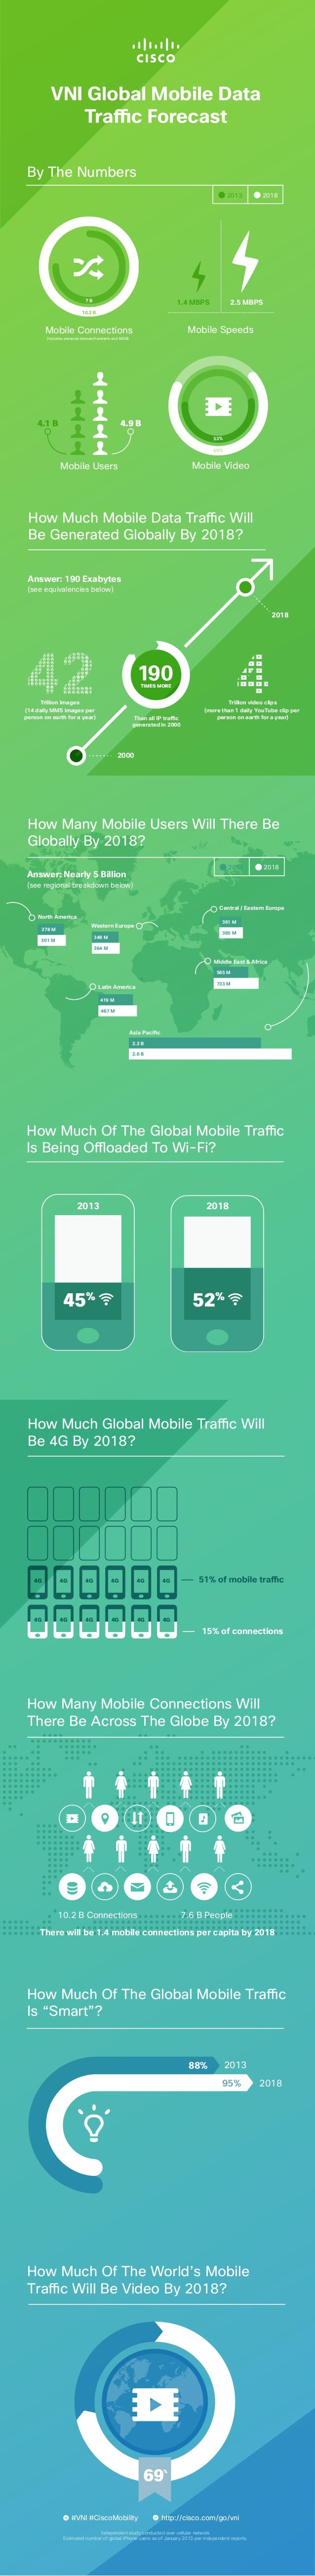 Cisco Visual Networking Index Global Mobile Data Traffic Forecast Infographic by Cisco Service Provider via slideshare